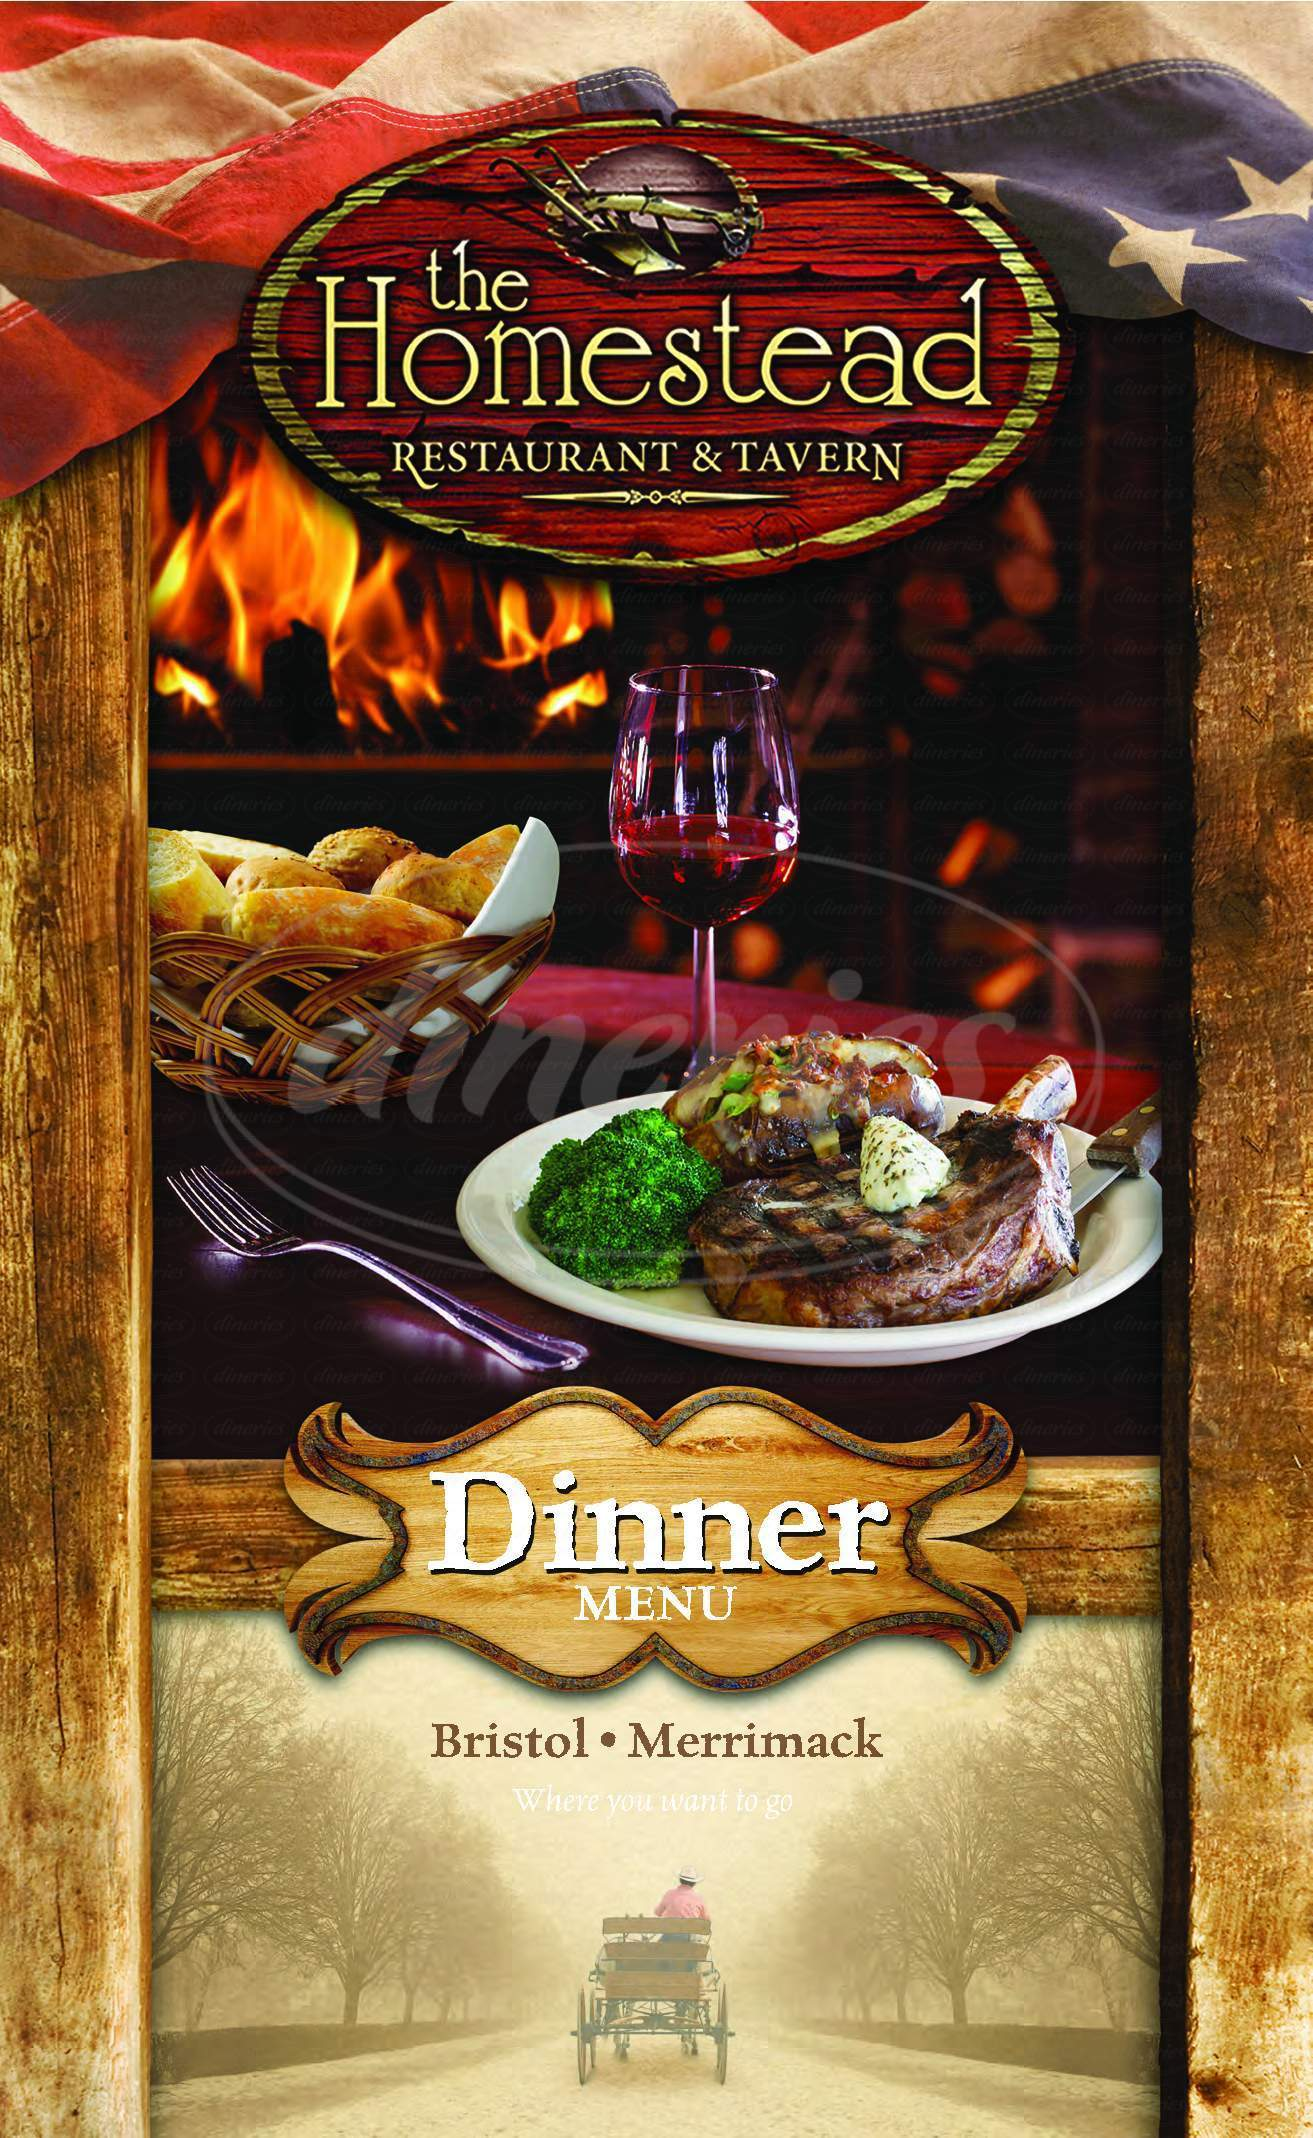 menu for The Homestead Restaurant & Tavern